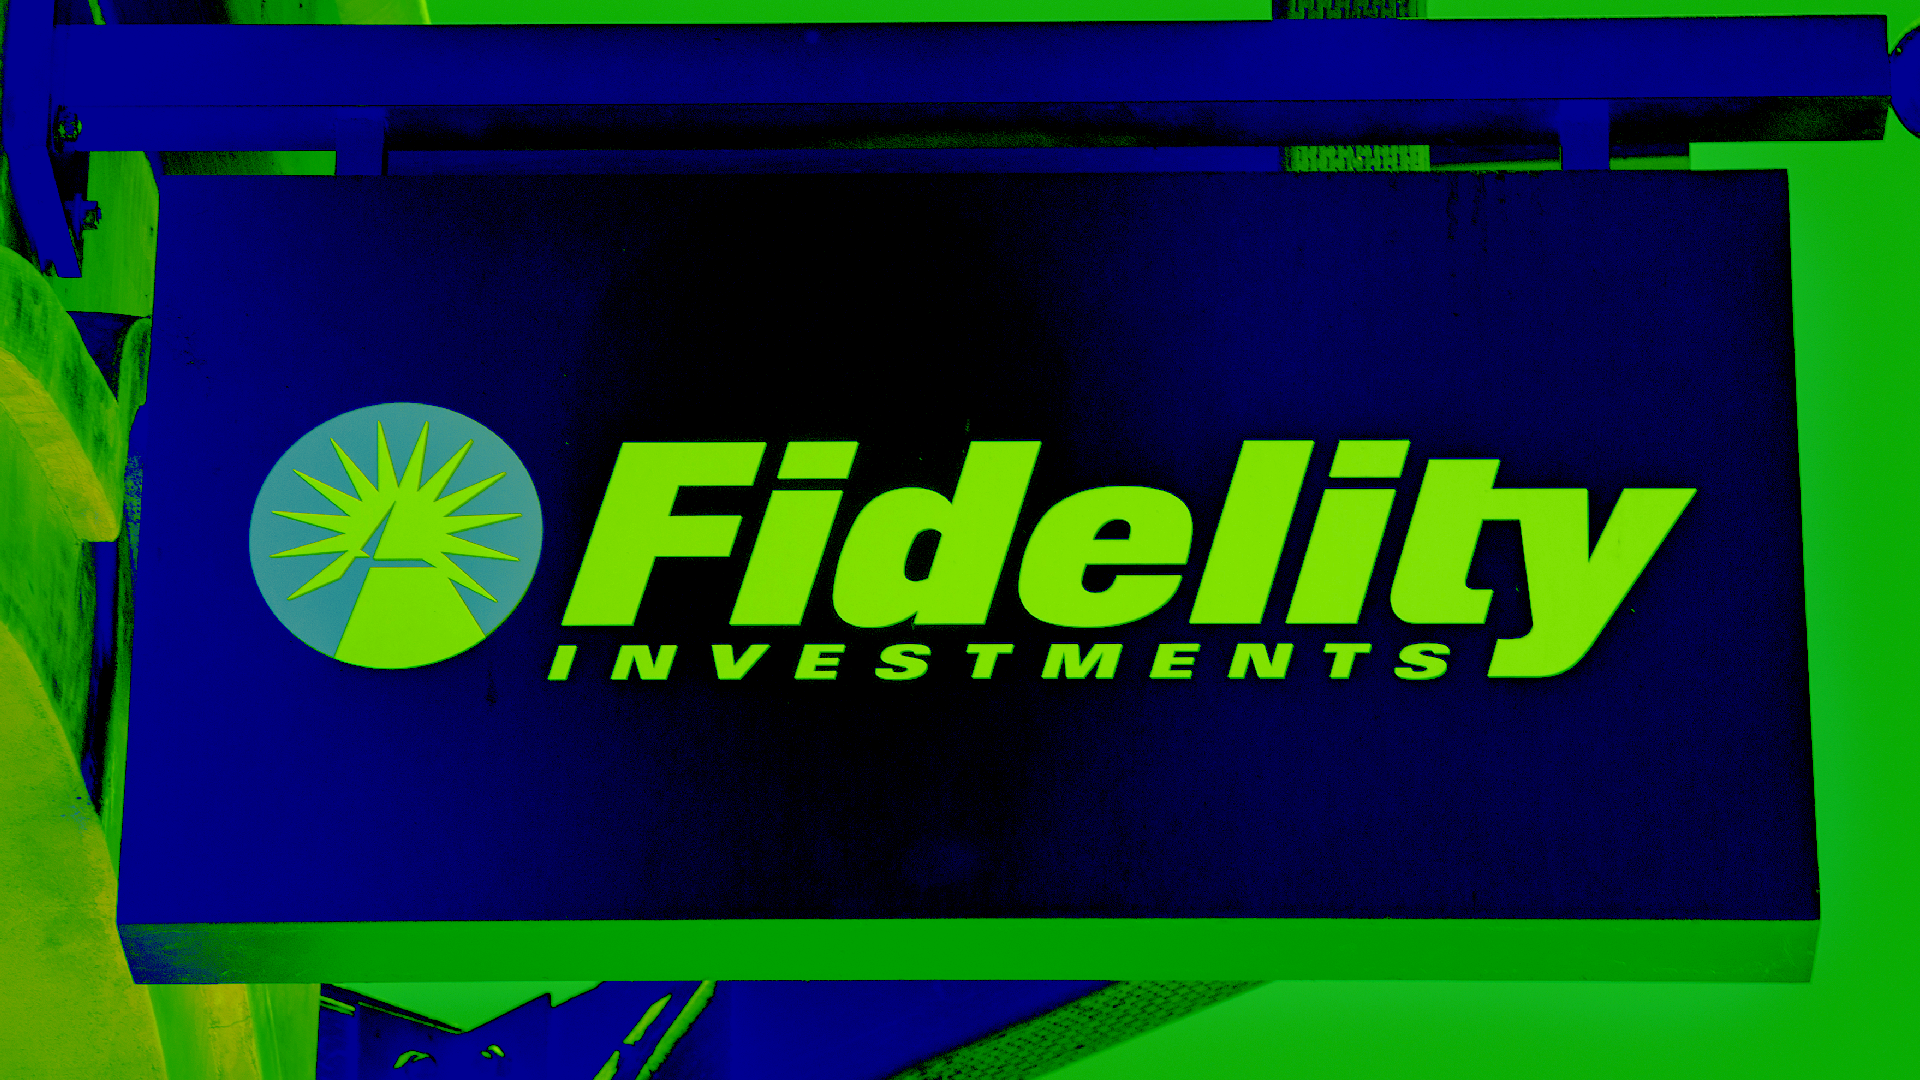 Asset management giant Fidelity files for a bitcoin ETF